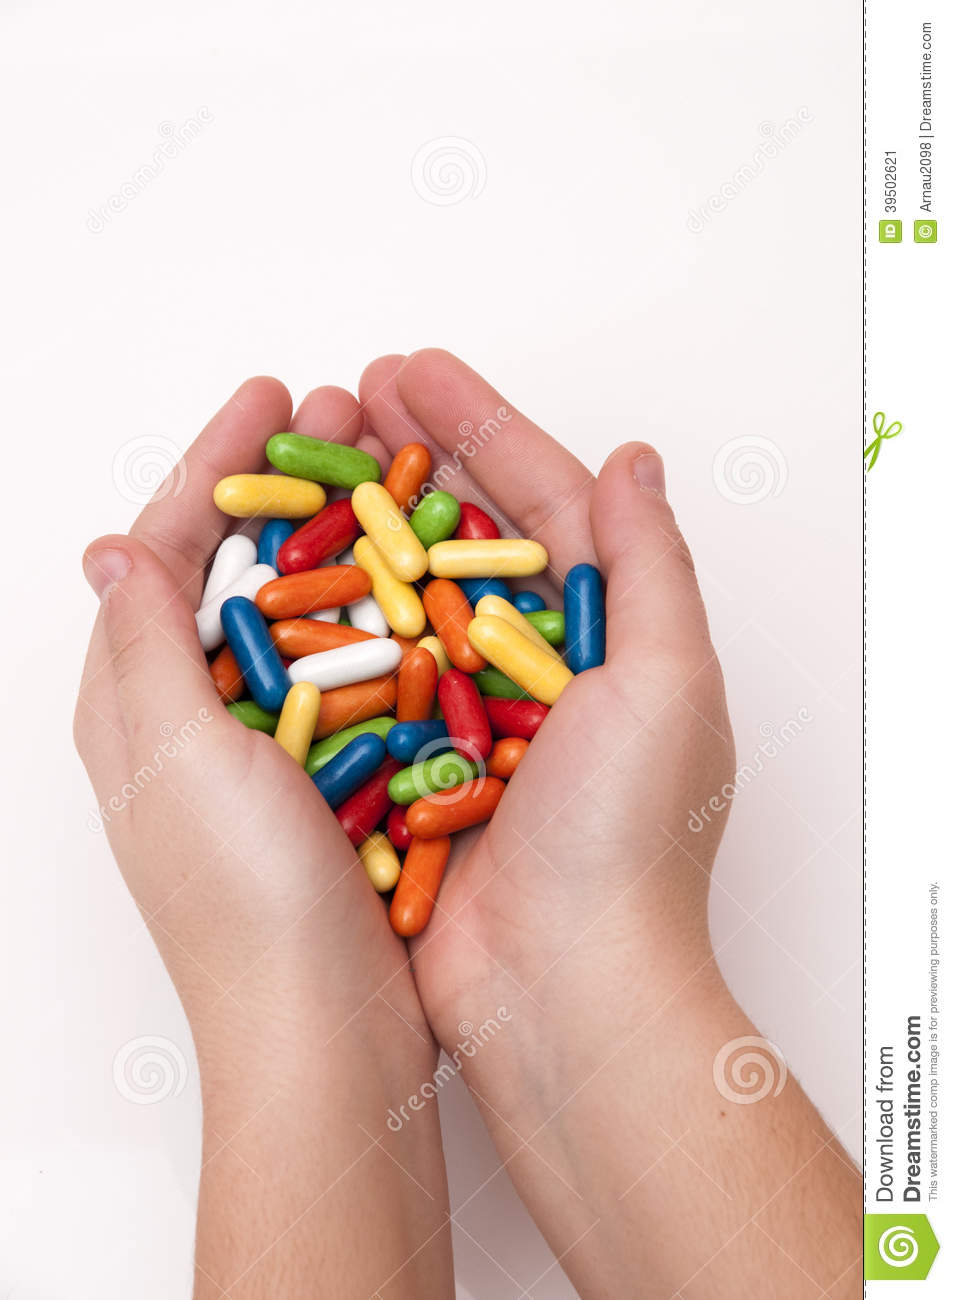 Hand full of candy